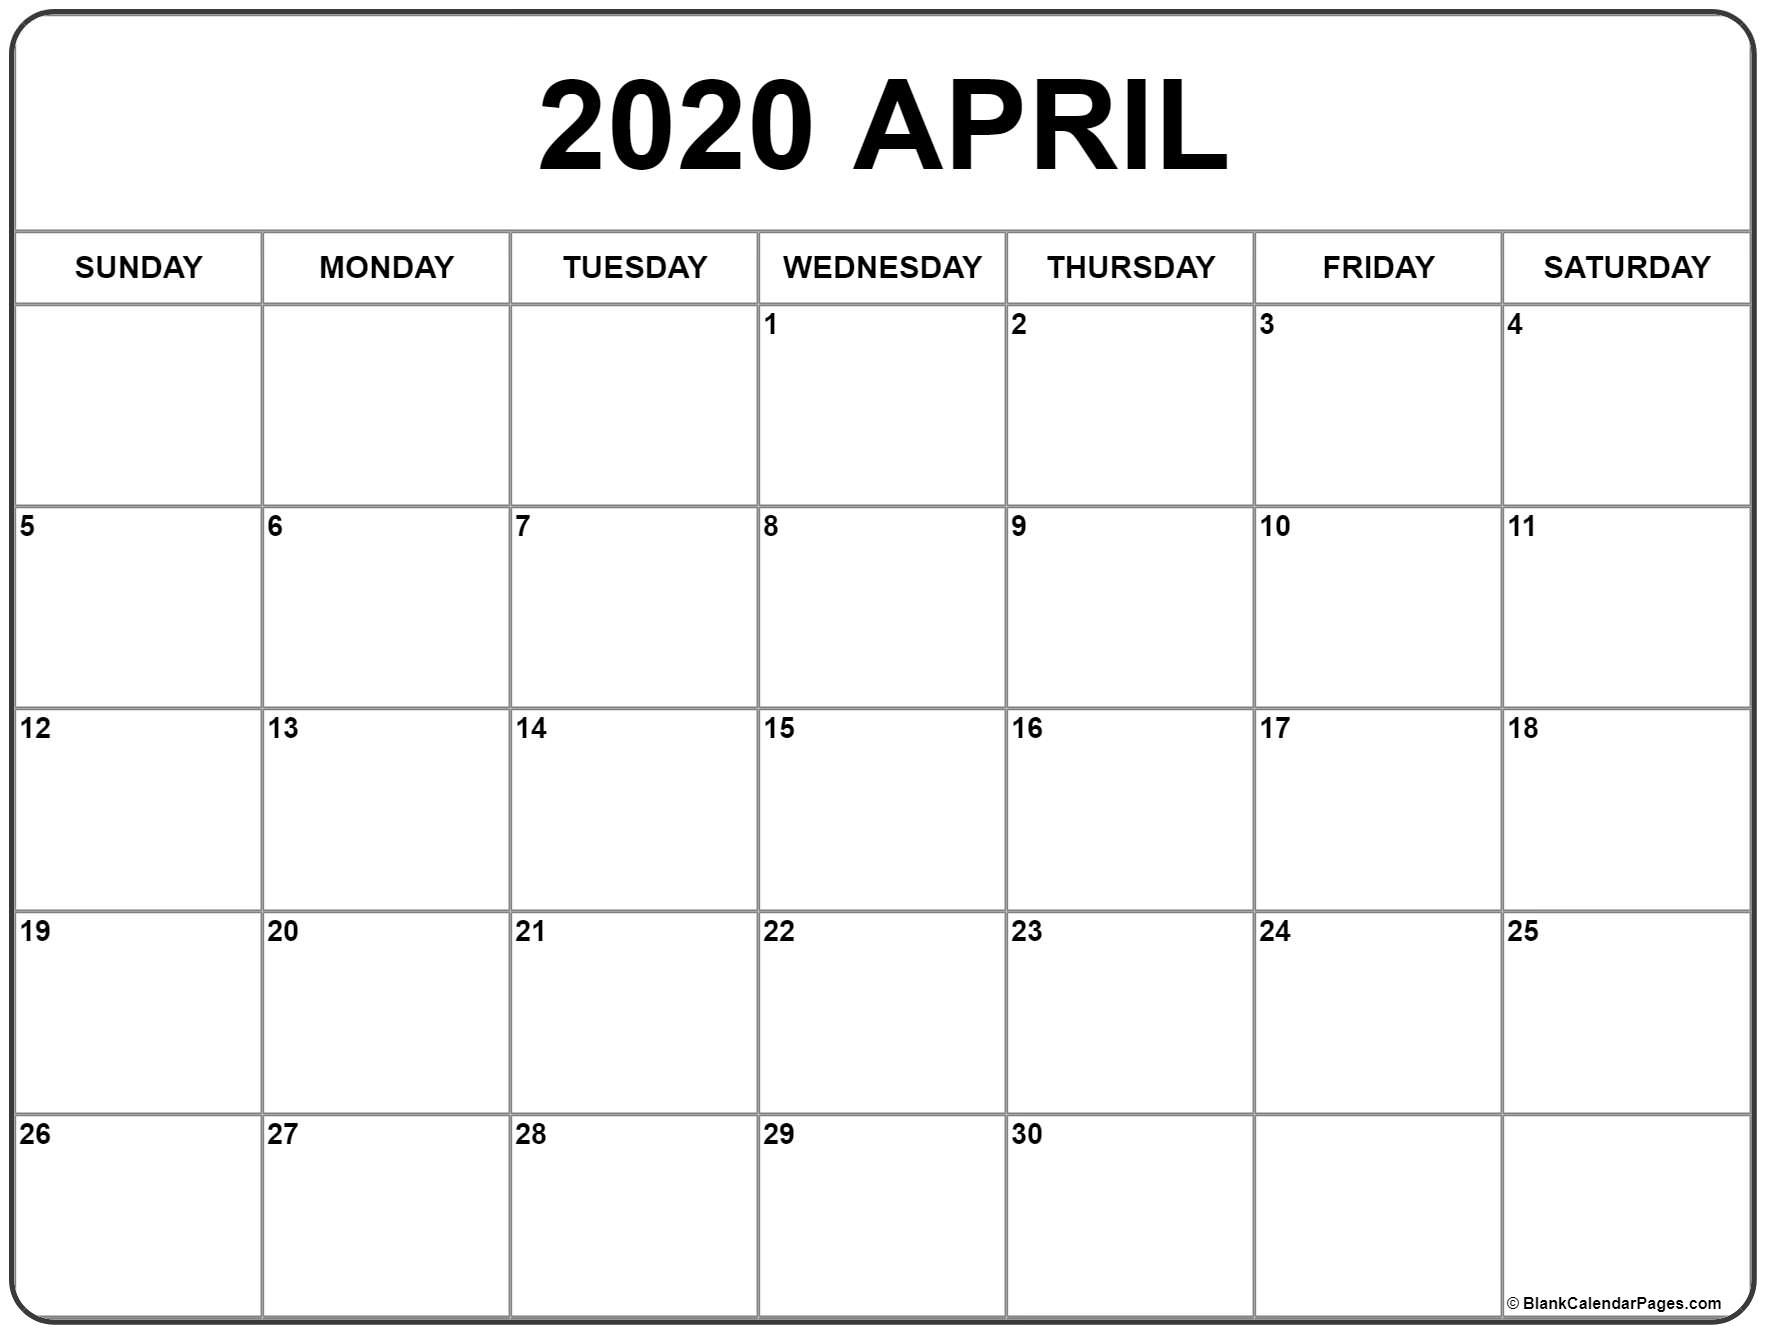 April 2020 Calendar | Free Printable Monthly Calendars-Blank 2 Pages Calendar 2020